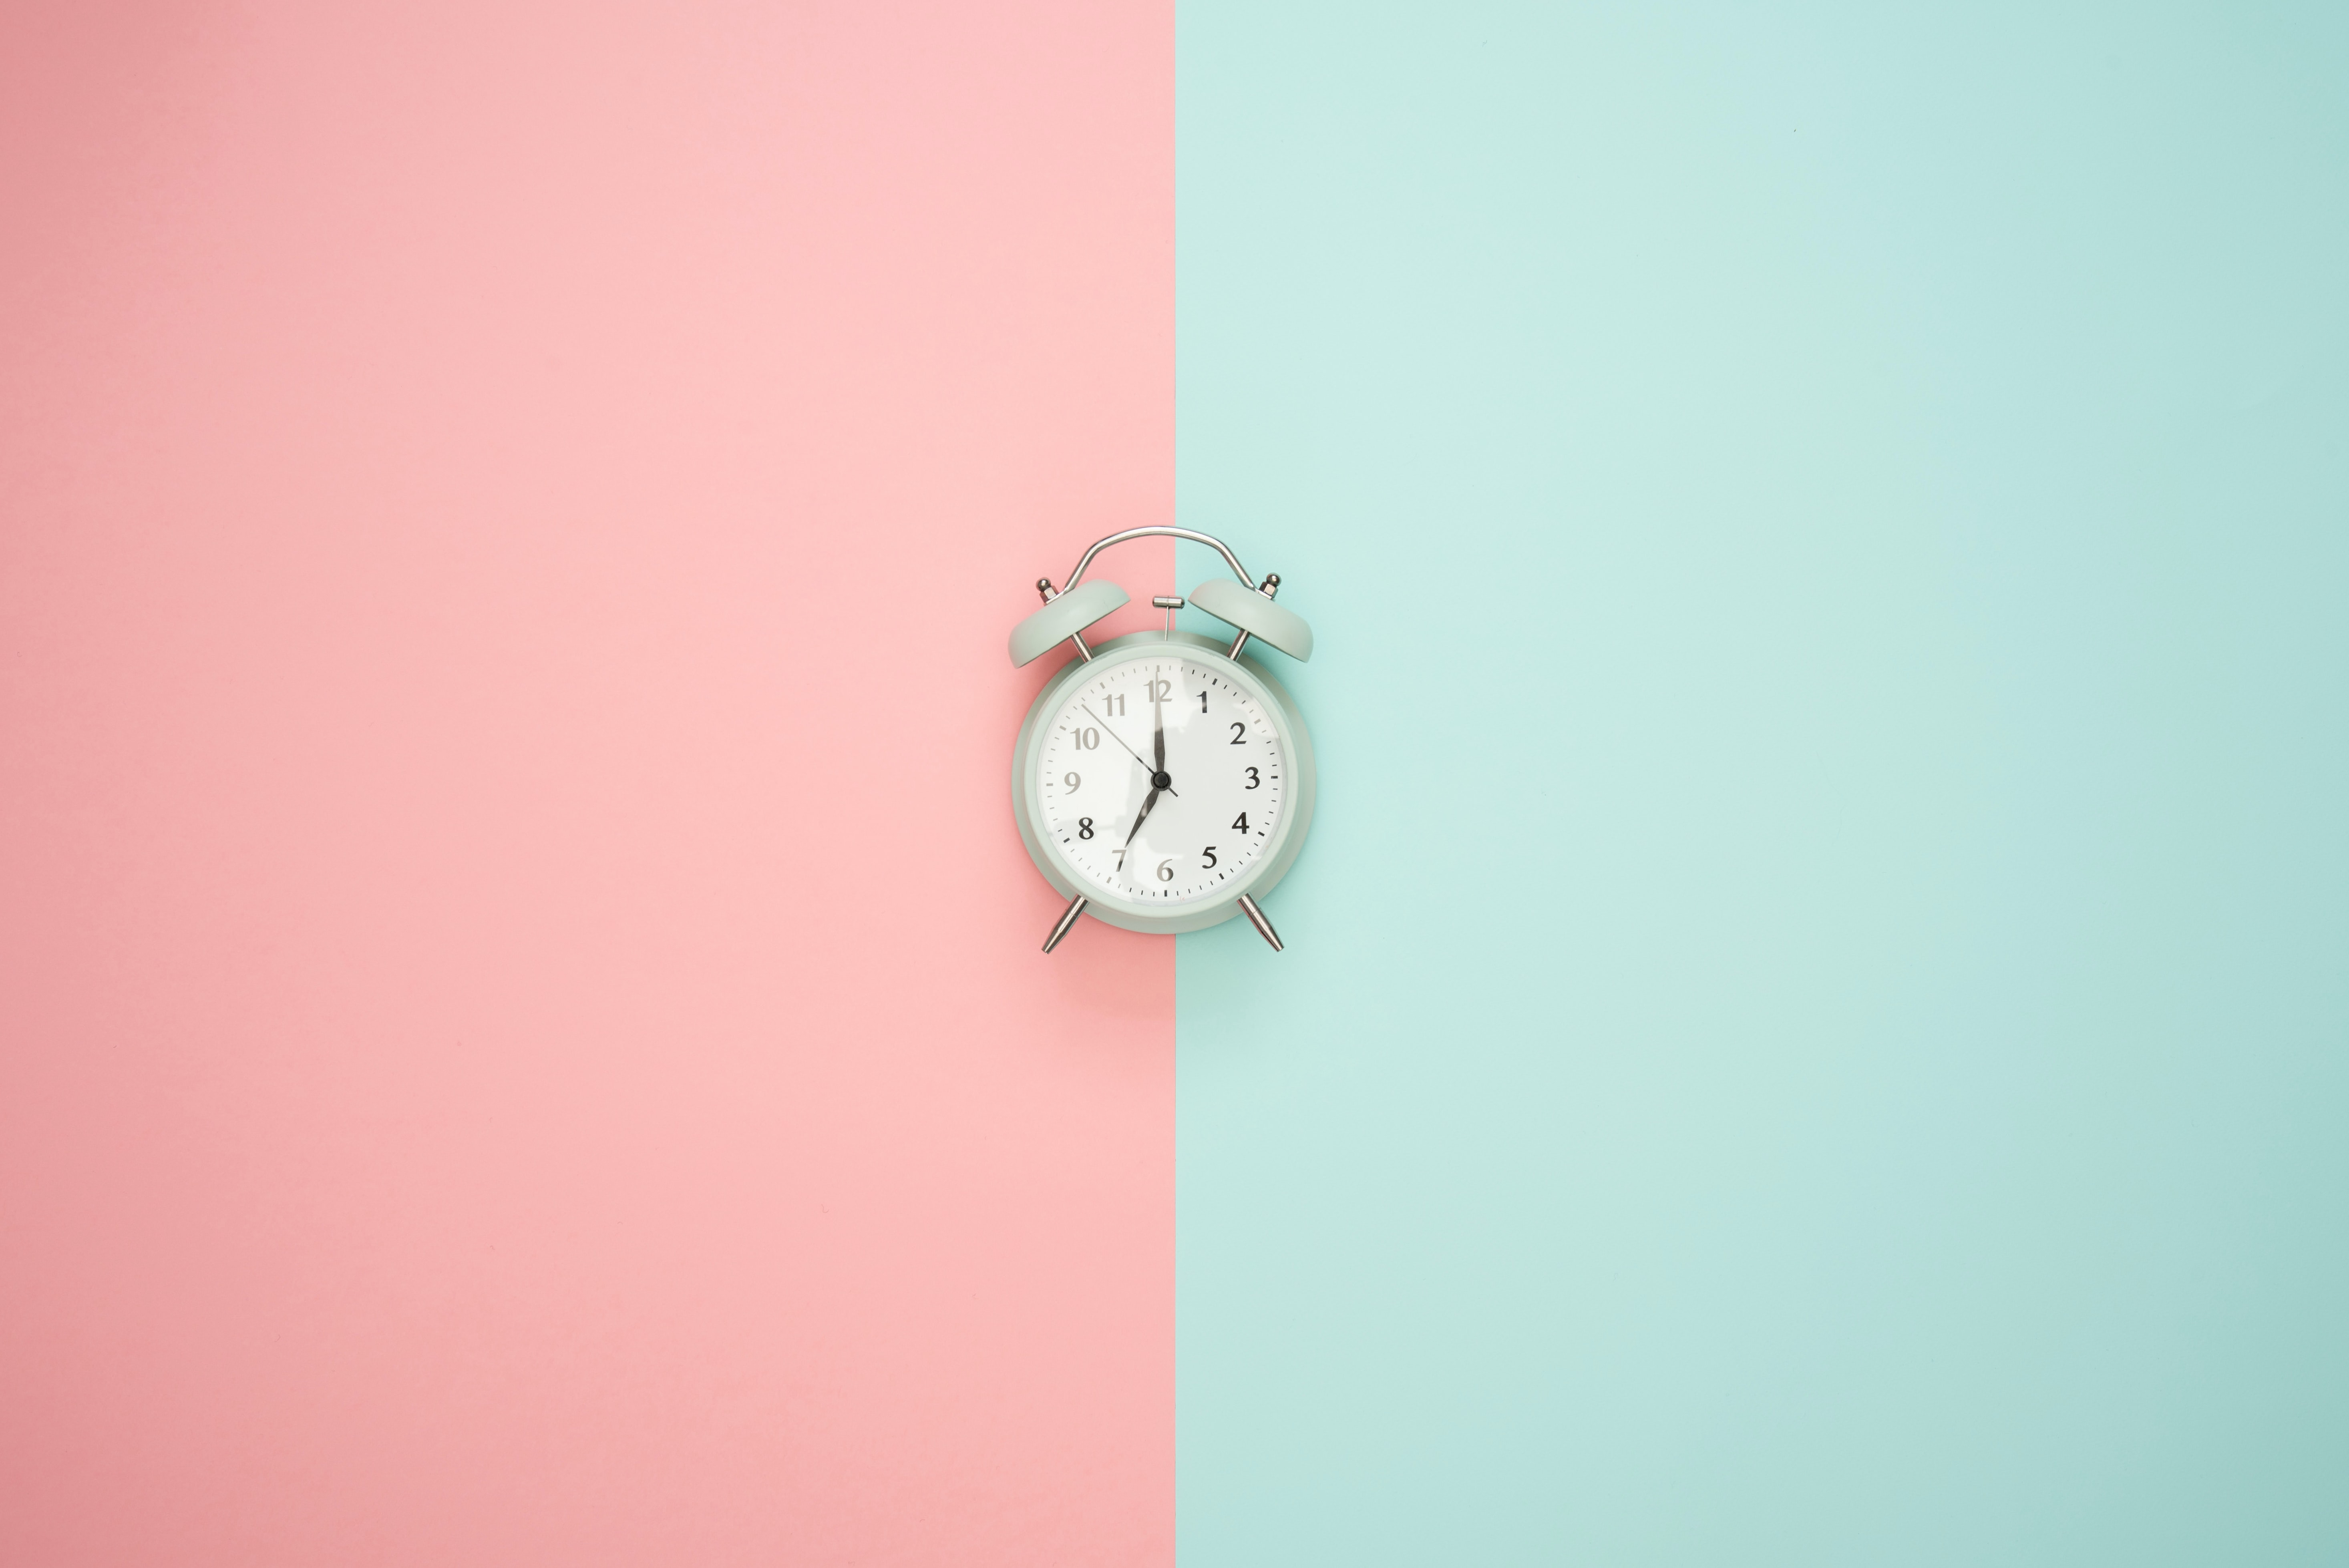 A pink and blue background is split by a clock. Employee engagement isn't limited to timezones.